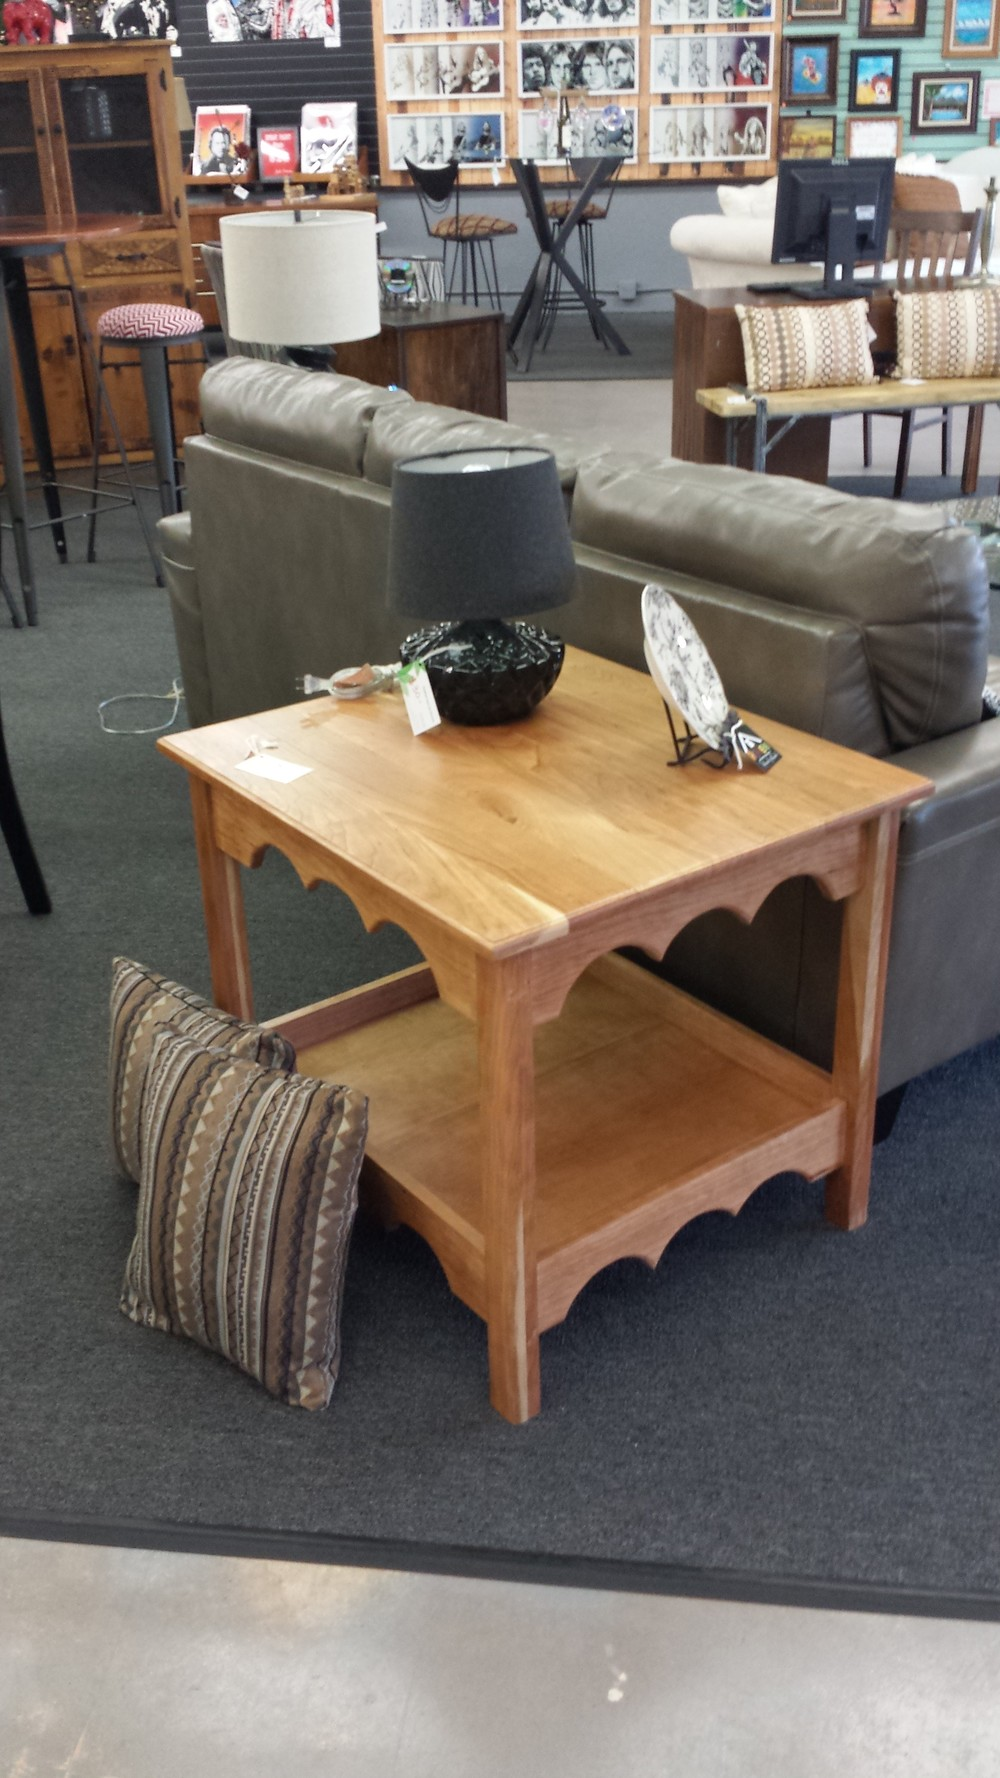 Customizing furniture is one of my passions by incorporating different woods.  I visualize unfinished wood and place my signature on it. The construction is made to last by using processes like joinery. The picture above is a side table made from cherry wood (currently being displayed at Blue Chair located on Broadway in Denver.) The  black shelf below is made from pine and stained with Jacobean stain is also on display in my own retail space with other masterpieces.